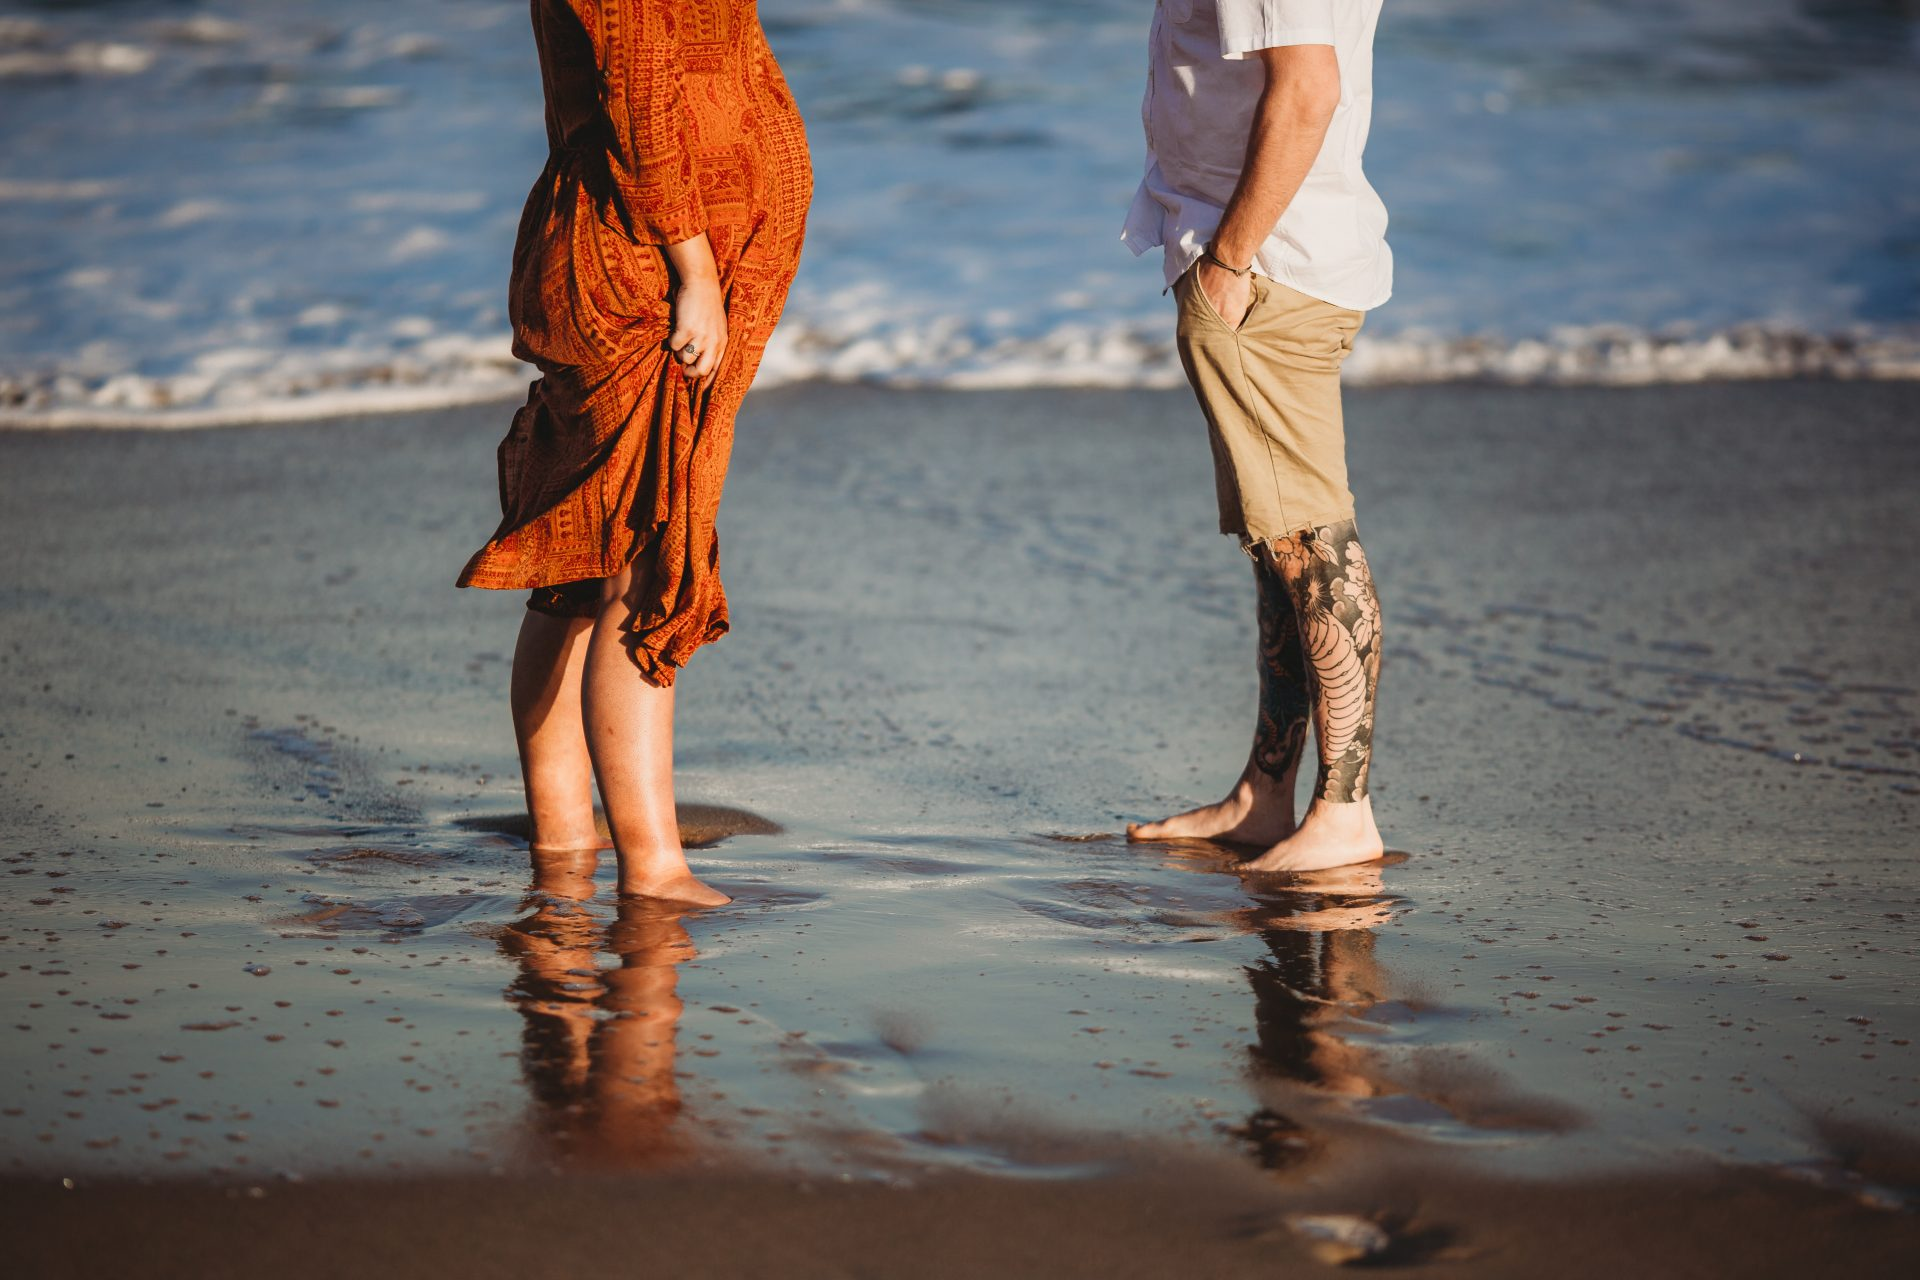 Young couple standing in the wet sand, facing each other